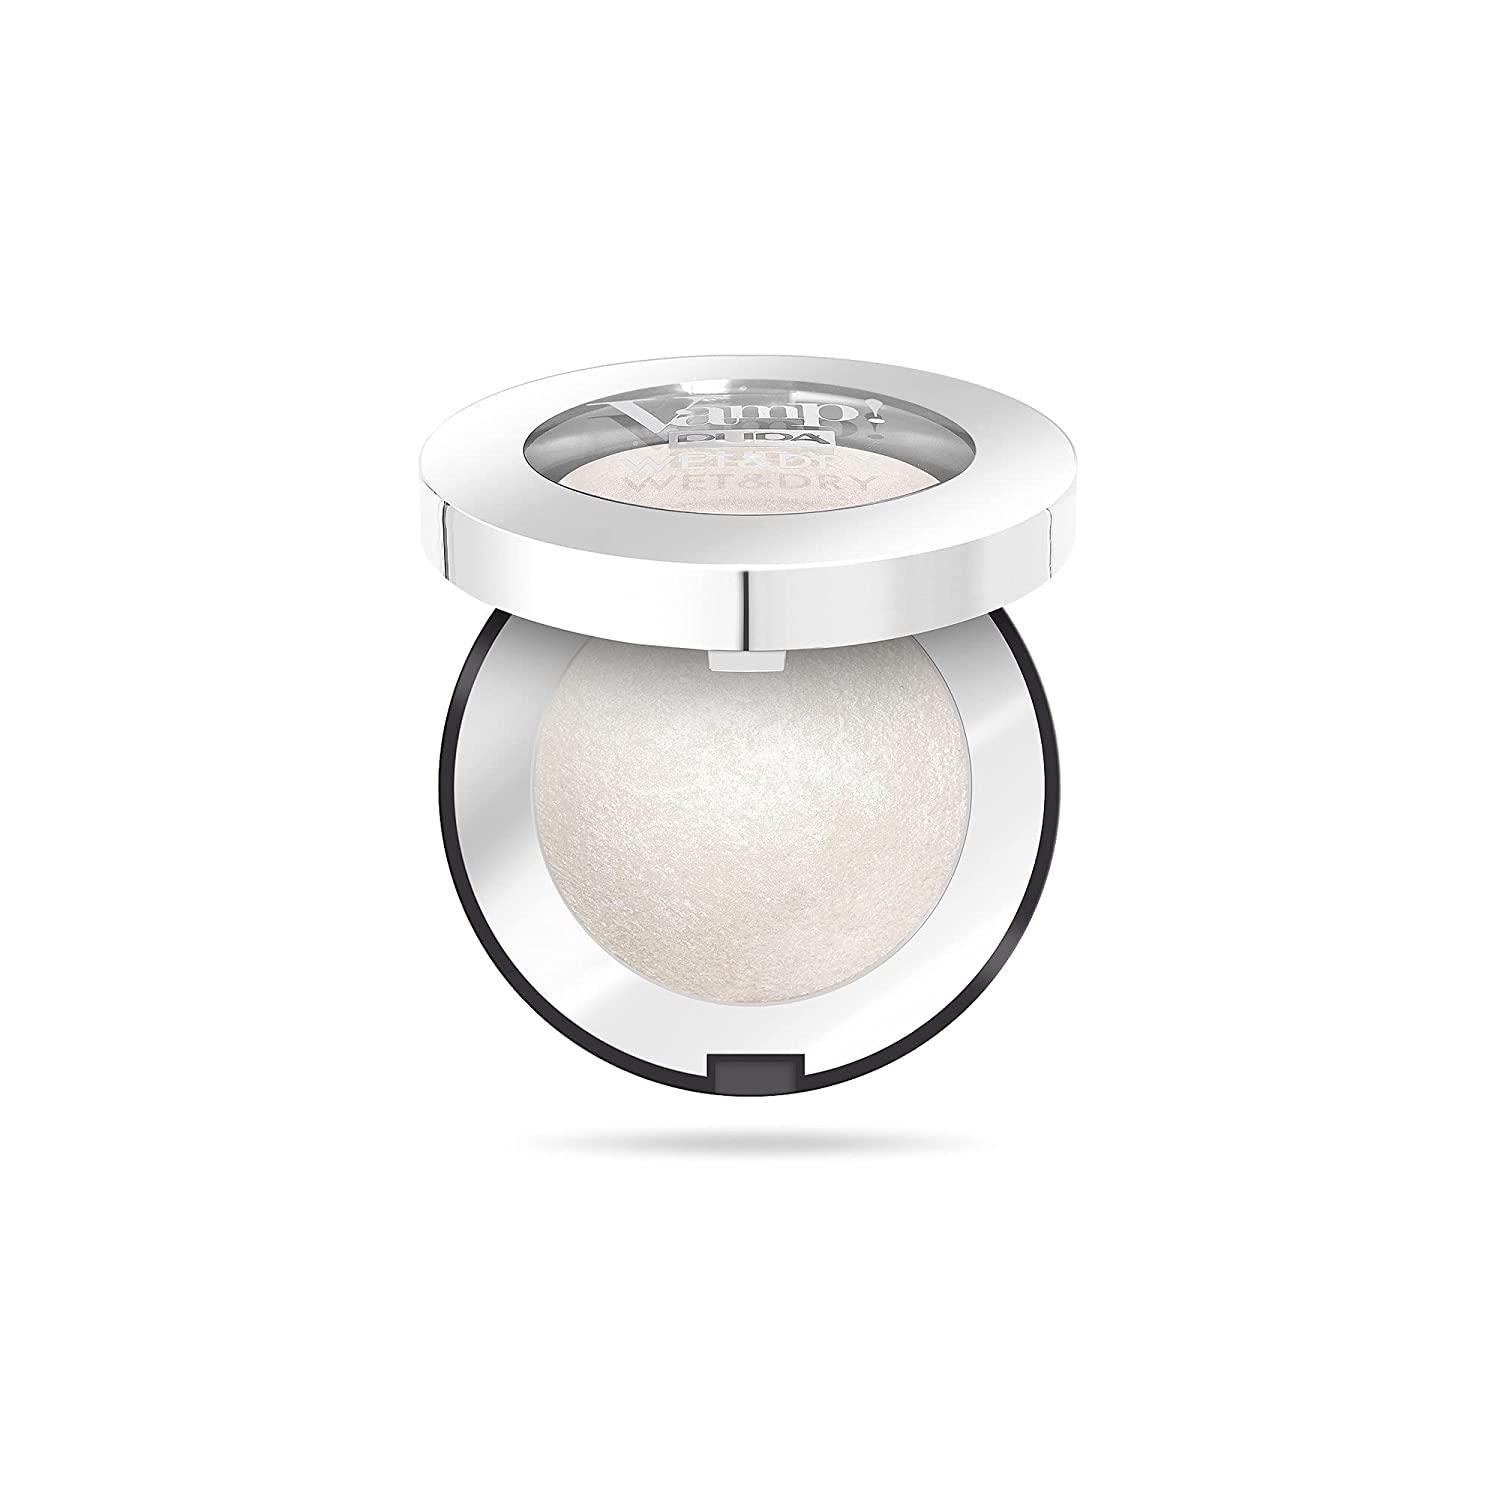 Vamp! Wet and Dry Baked Eyeshadow – 300 White Snow by Pupa Milano for Women – 0.035 oz Eye Shadow